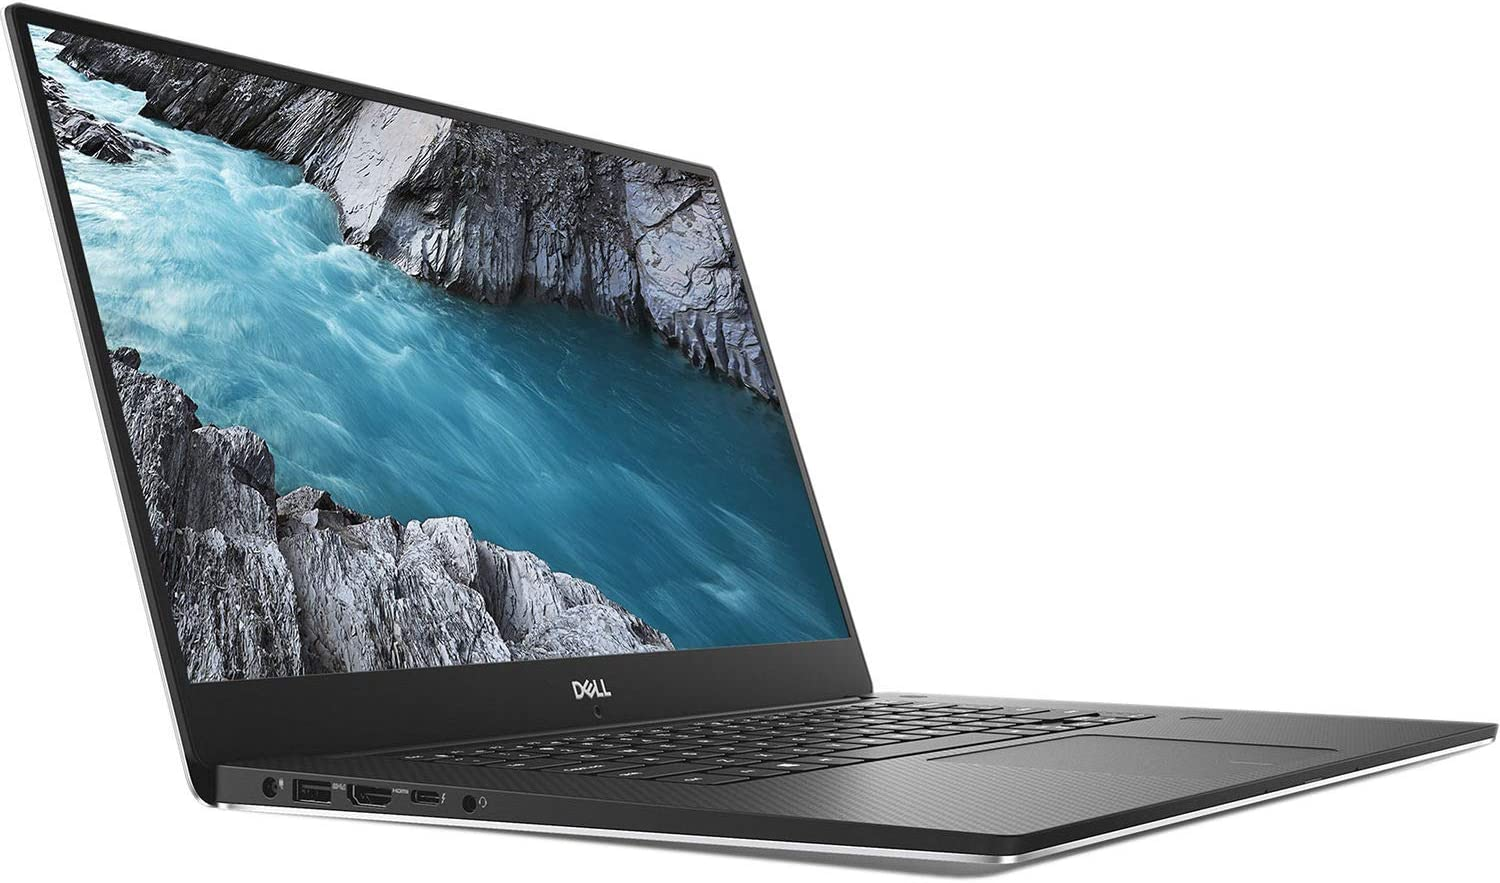 Dell XPS 15 9570 15.6in Touchscreen InfinityEdge 4K Ultra HD Laptop i7-8750H 32GB Memory 1TB SSD 4GB NVIDIA GeForce GTX 1050 Ti Windows 10 Pro Silver (Renewed)